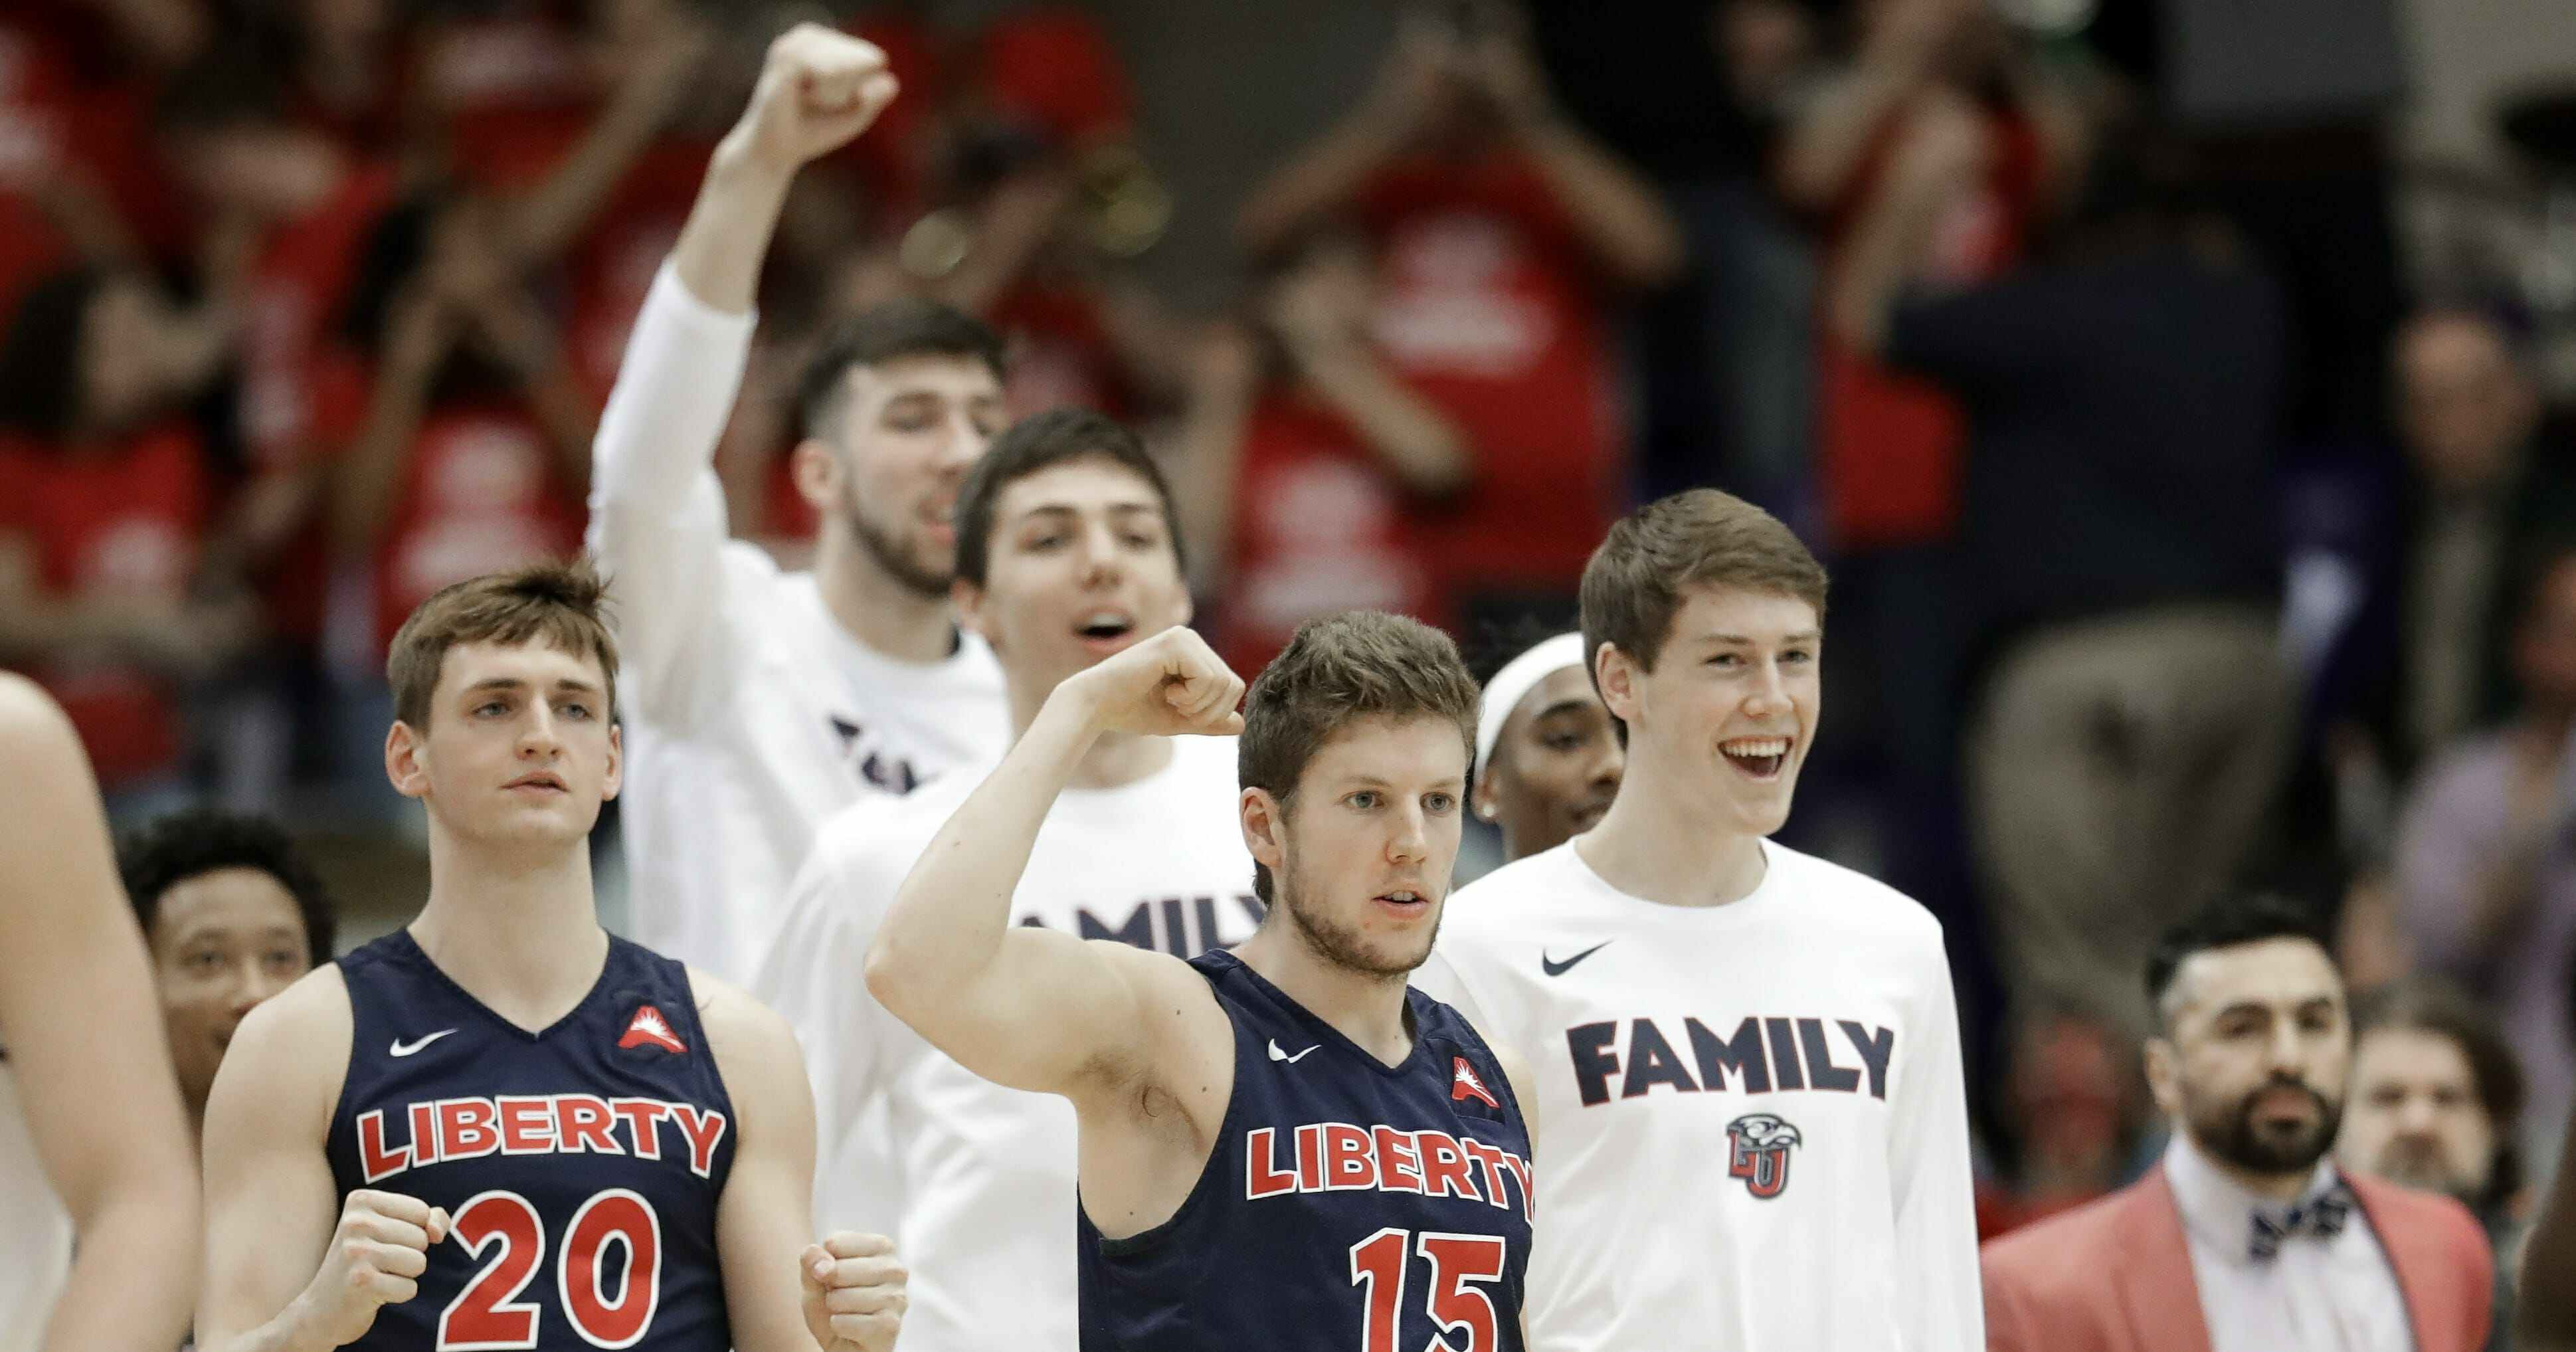 Liberty's Keegan McDowell and Zach Farquhar celebrate a score against Lipscomb in the first half of the Atlantic Sun NCAA college basketball tournament championship game Sunday, Mar. 10, 2019, in Nashville, Tenn.